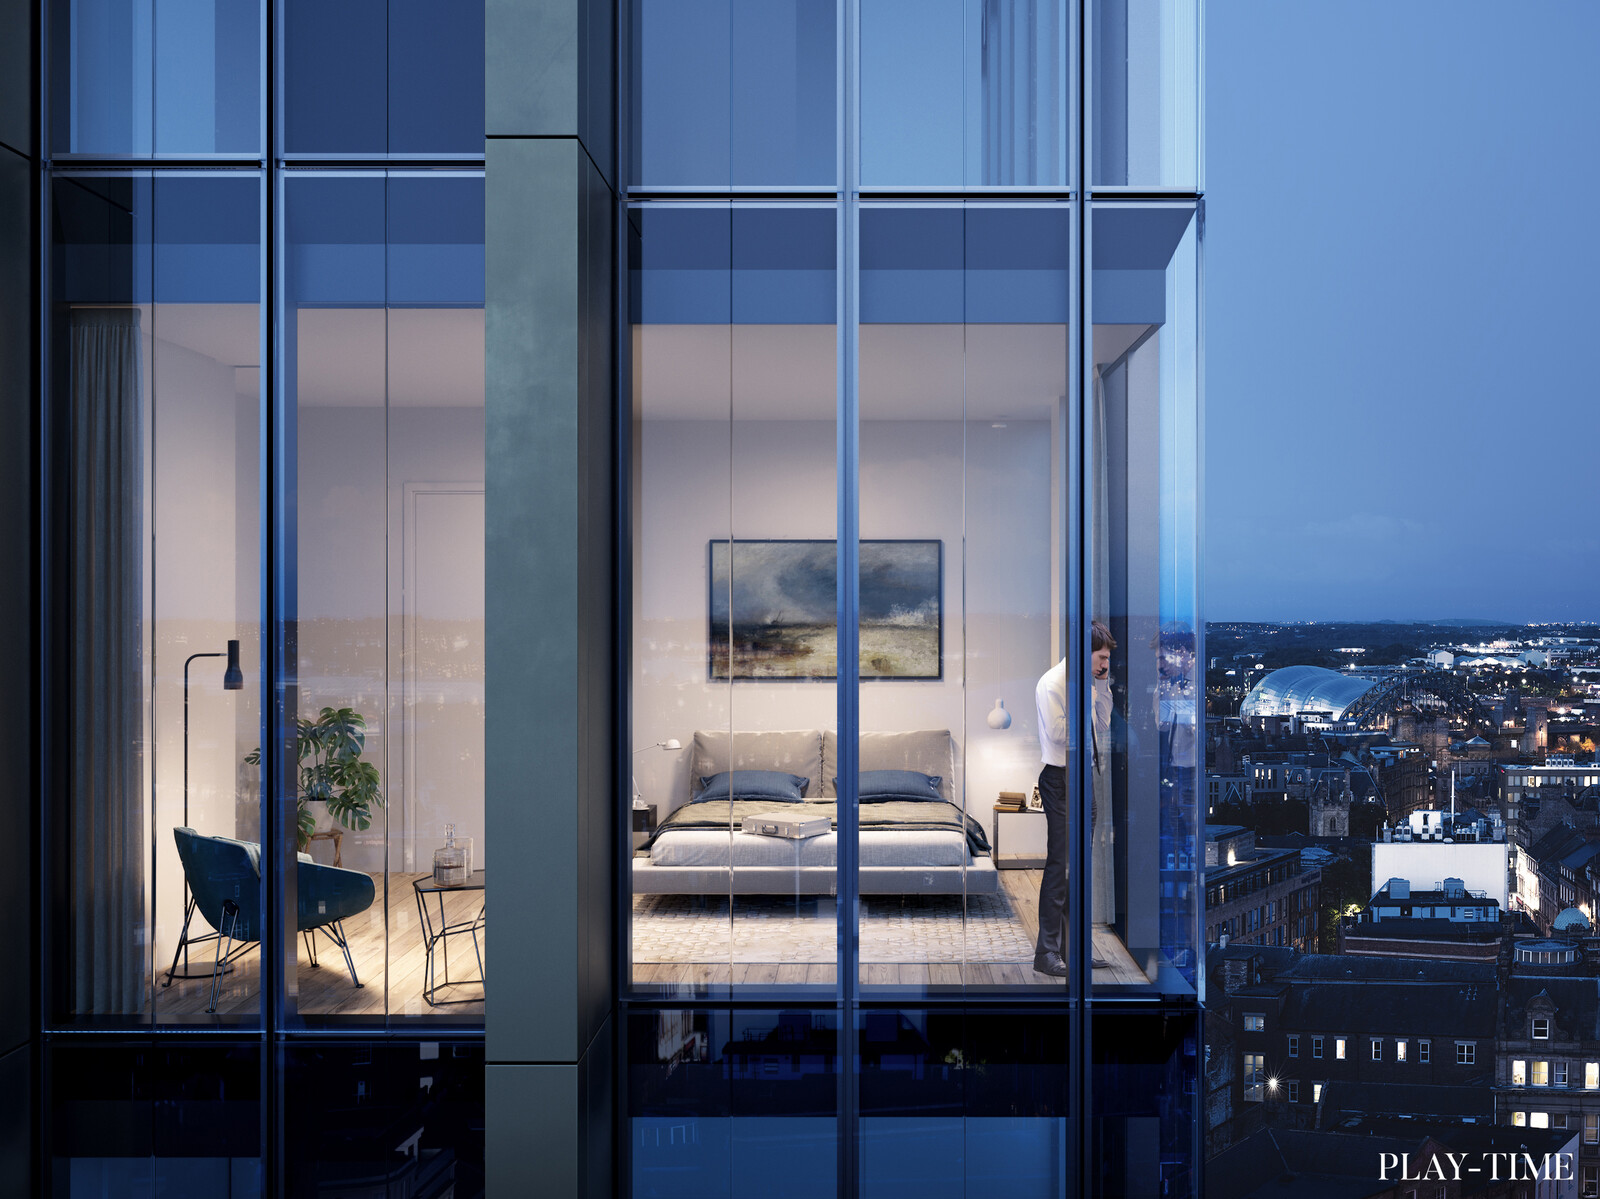 Residential tower by FaulknerBrowns Architects